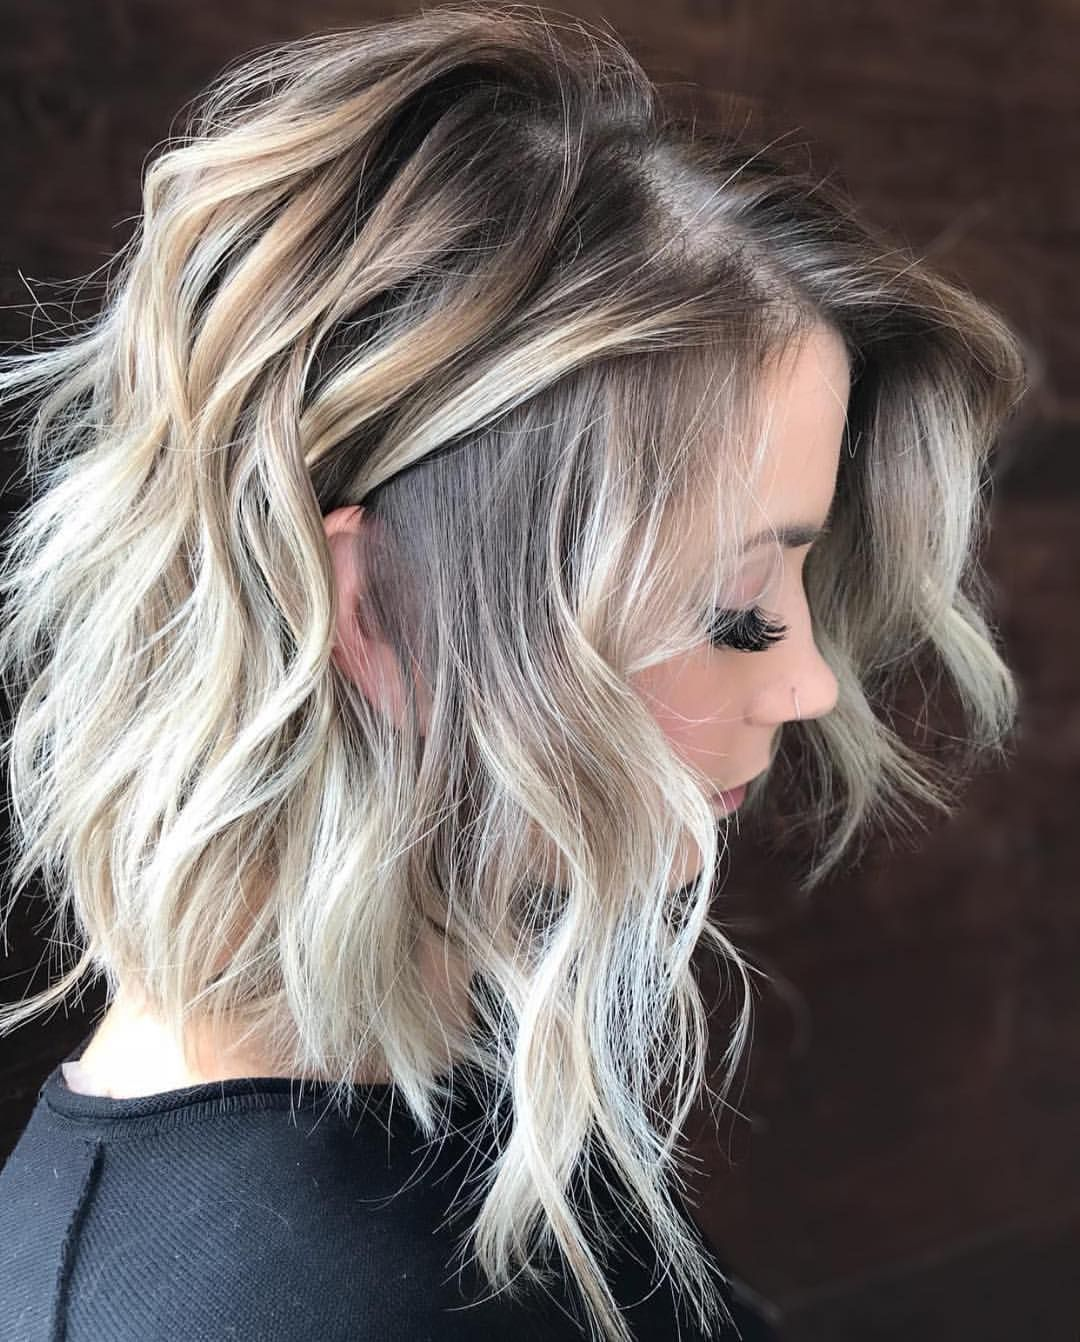 3 Hair Trends That Will Be Huge In L.A. This Year | Los angeles ...